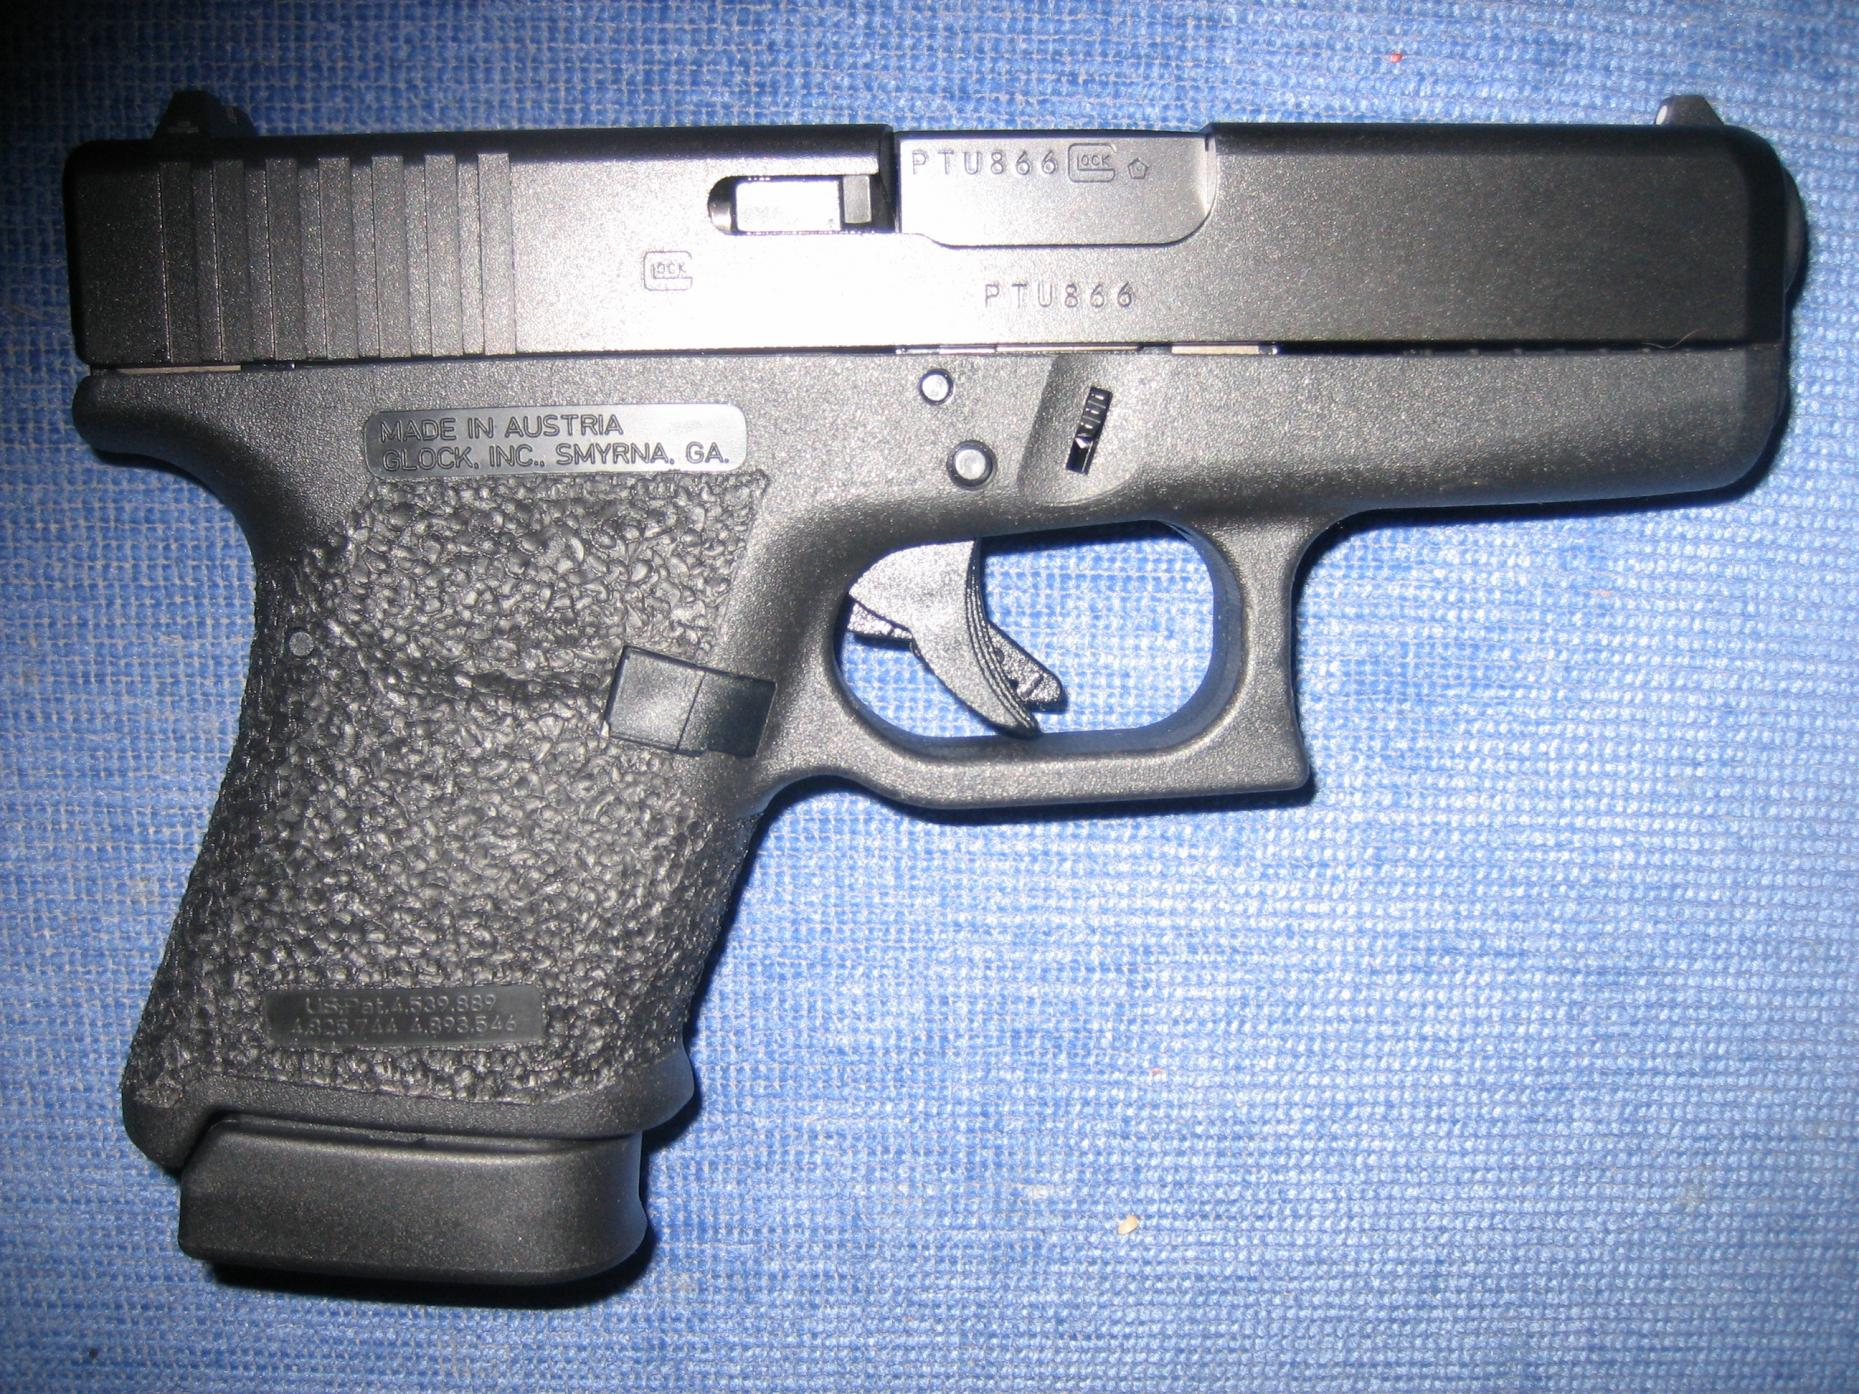 Glock G36 w/ grip reduction-grip-reduction-001.jpg